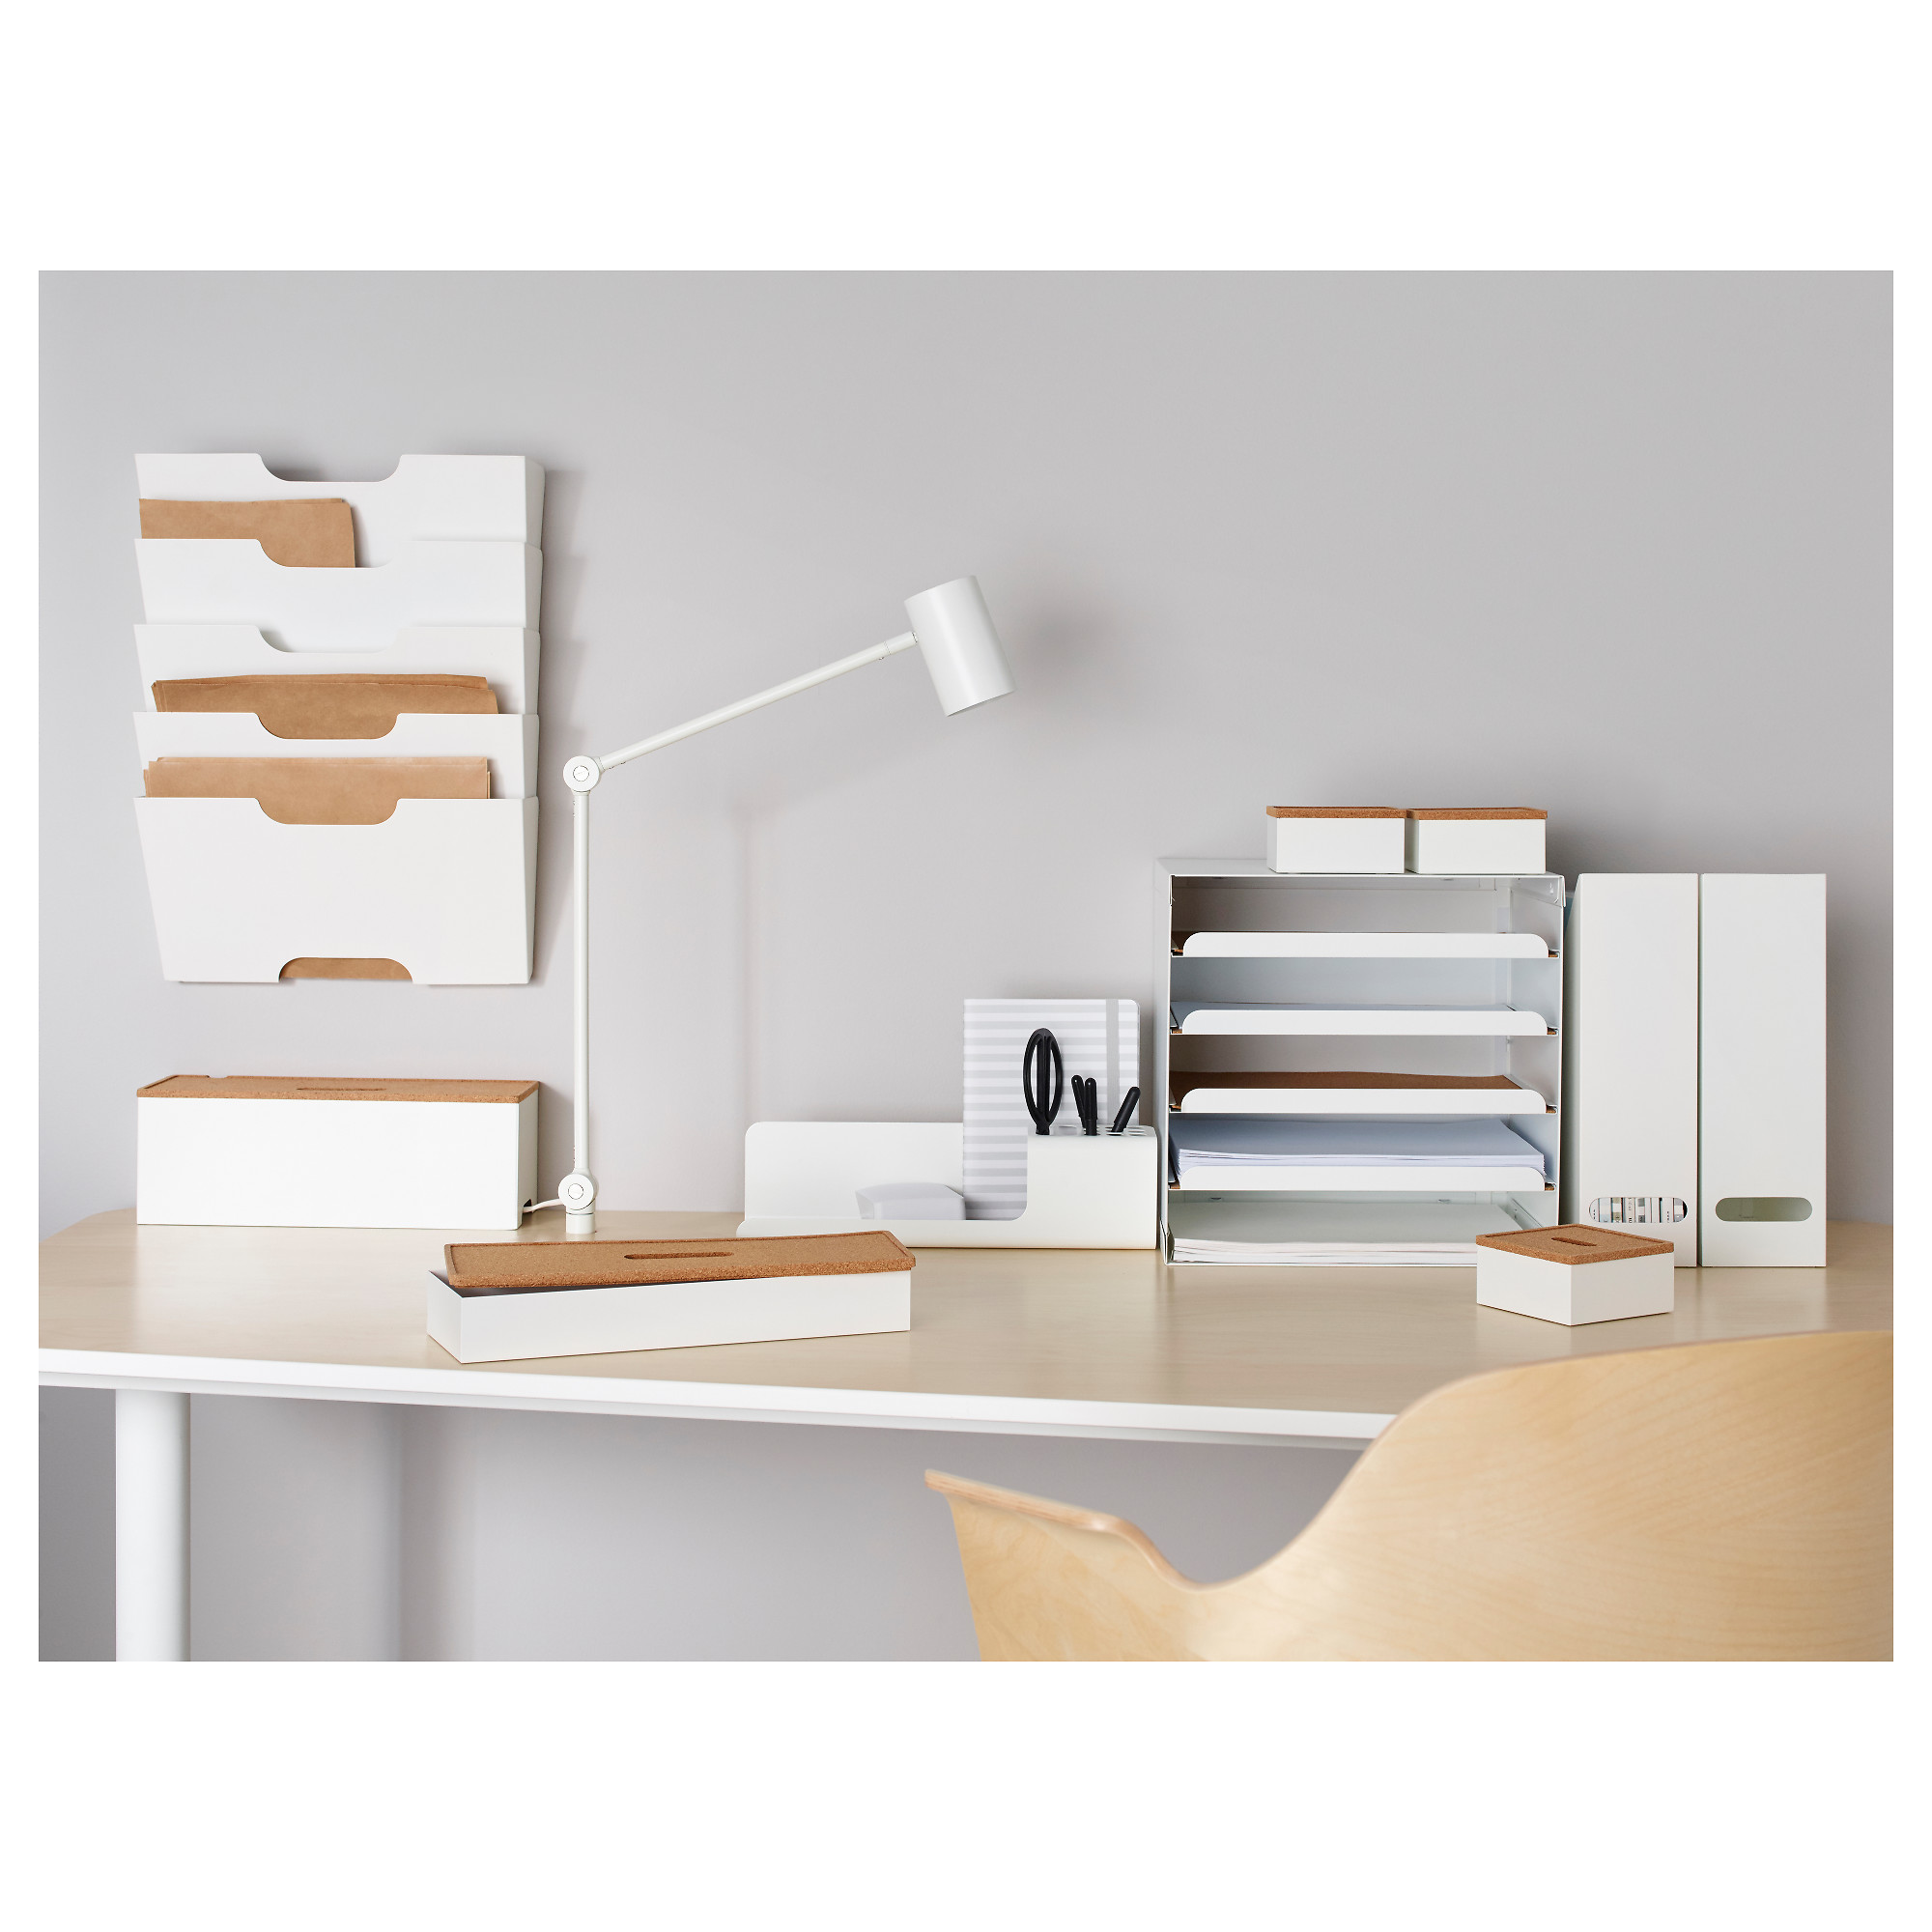 ikea office accessories ikea office accessories. Black Bedroom Furniture Sets. Home Design Ideas